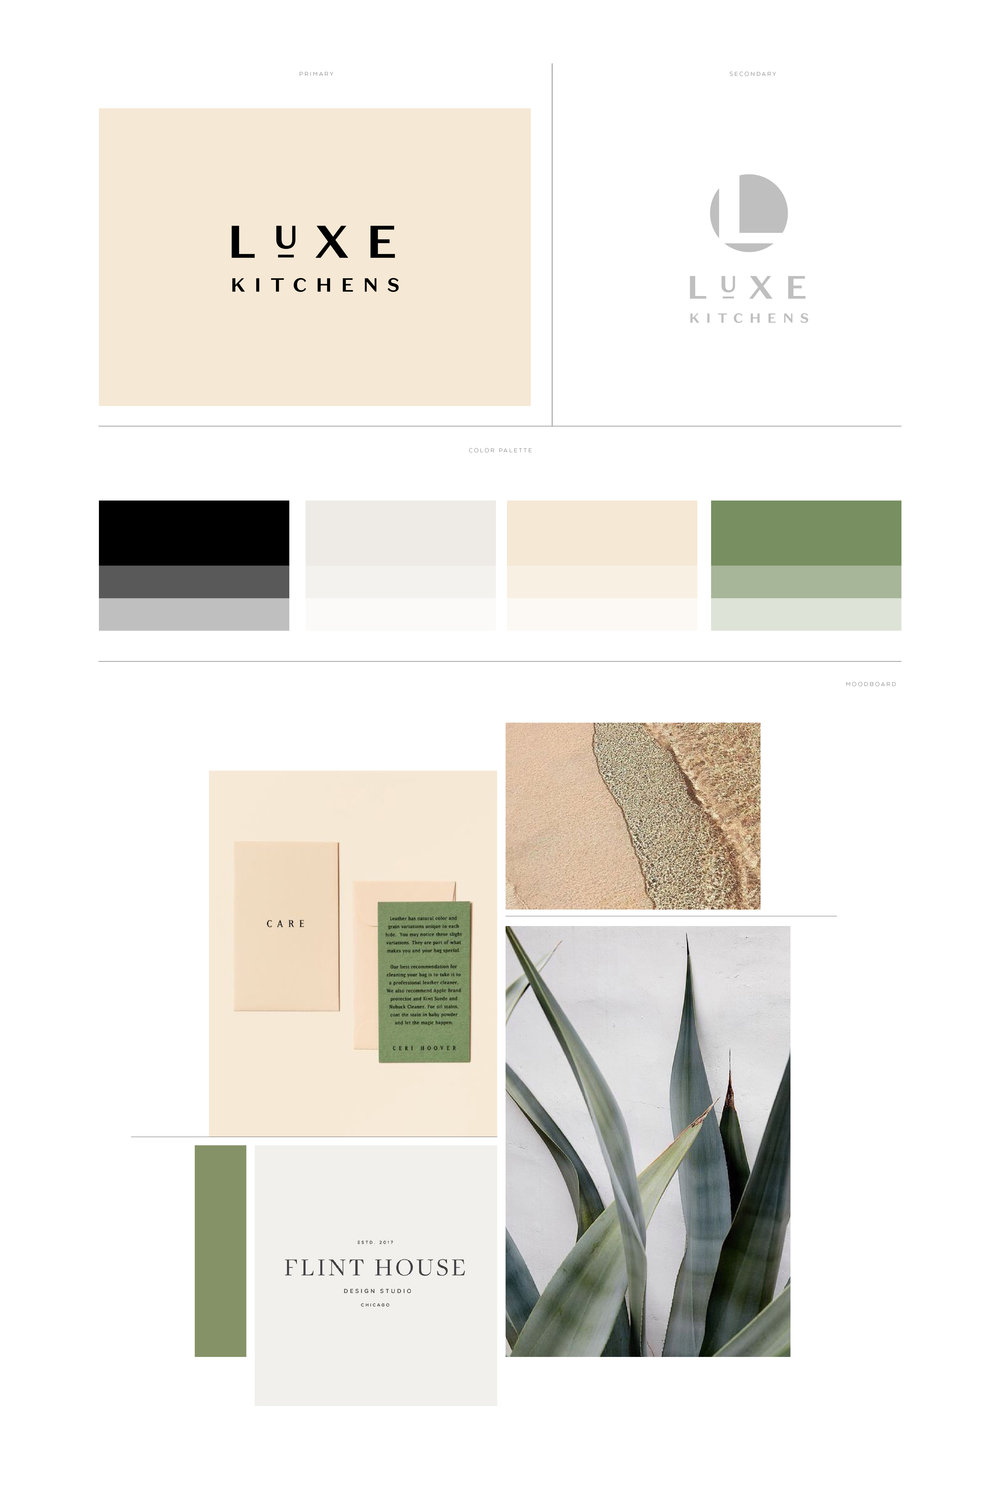 LUXEKITCHENS_HONOR_BRANDBOARD_04.jpg